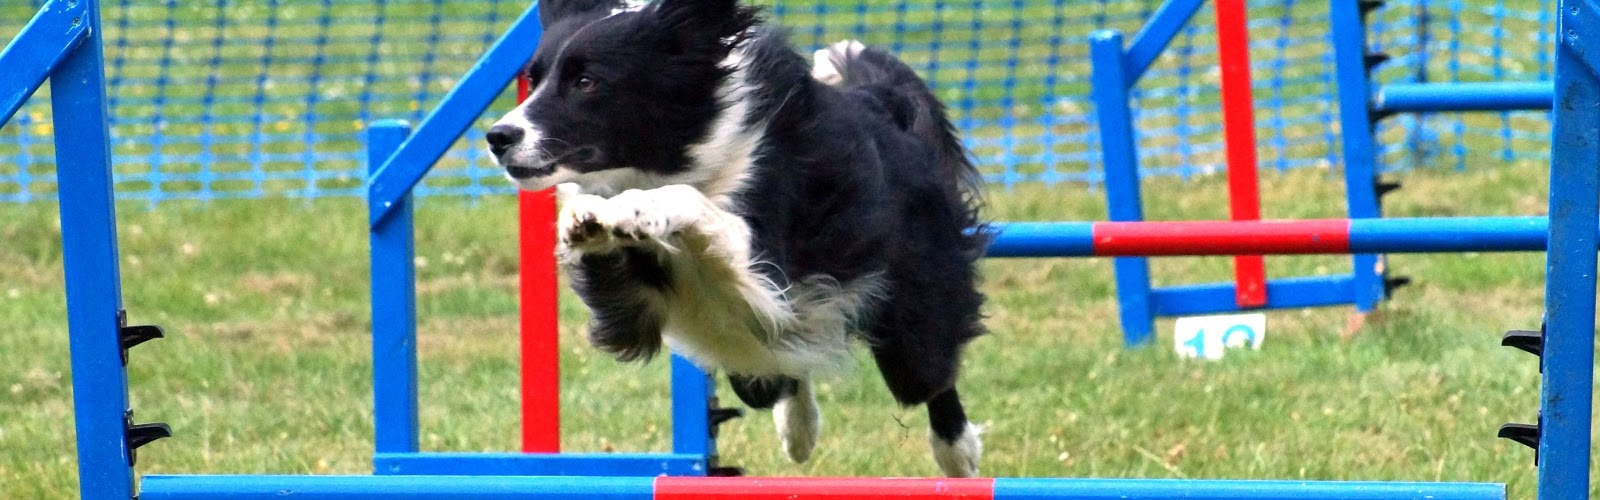 A border collie jumping over a pole during a dog show